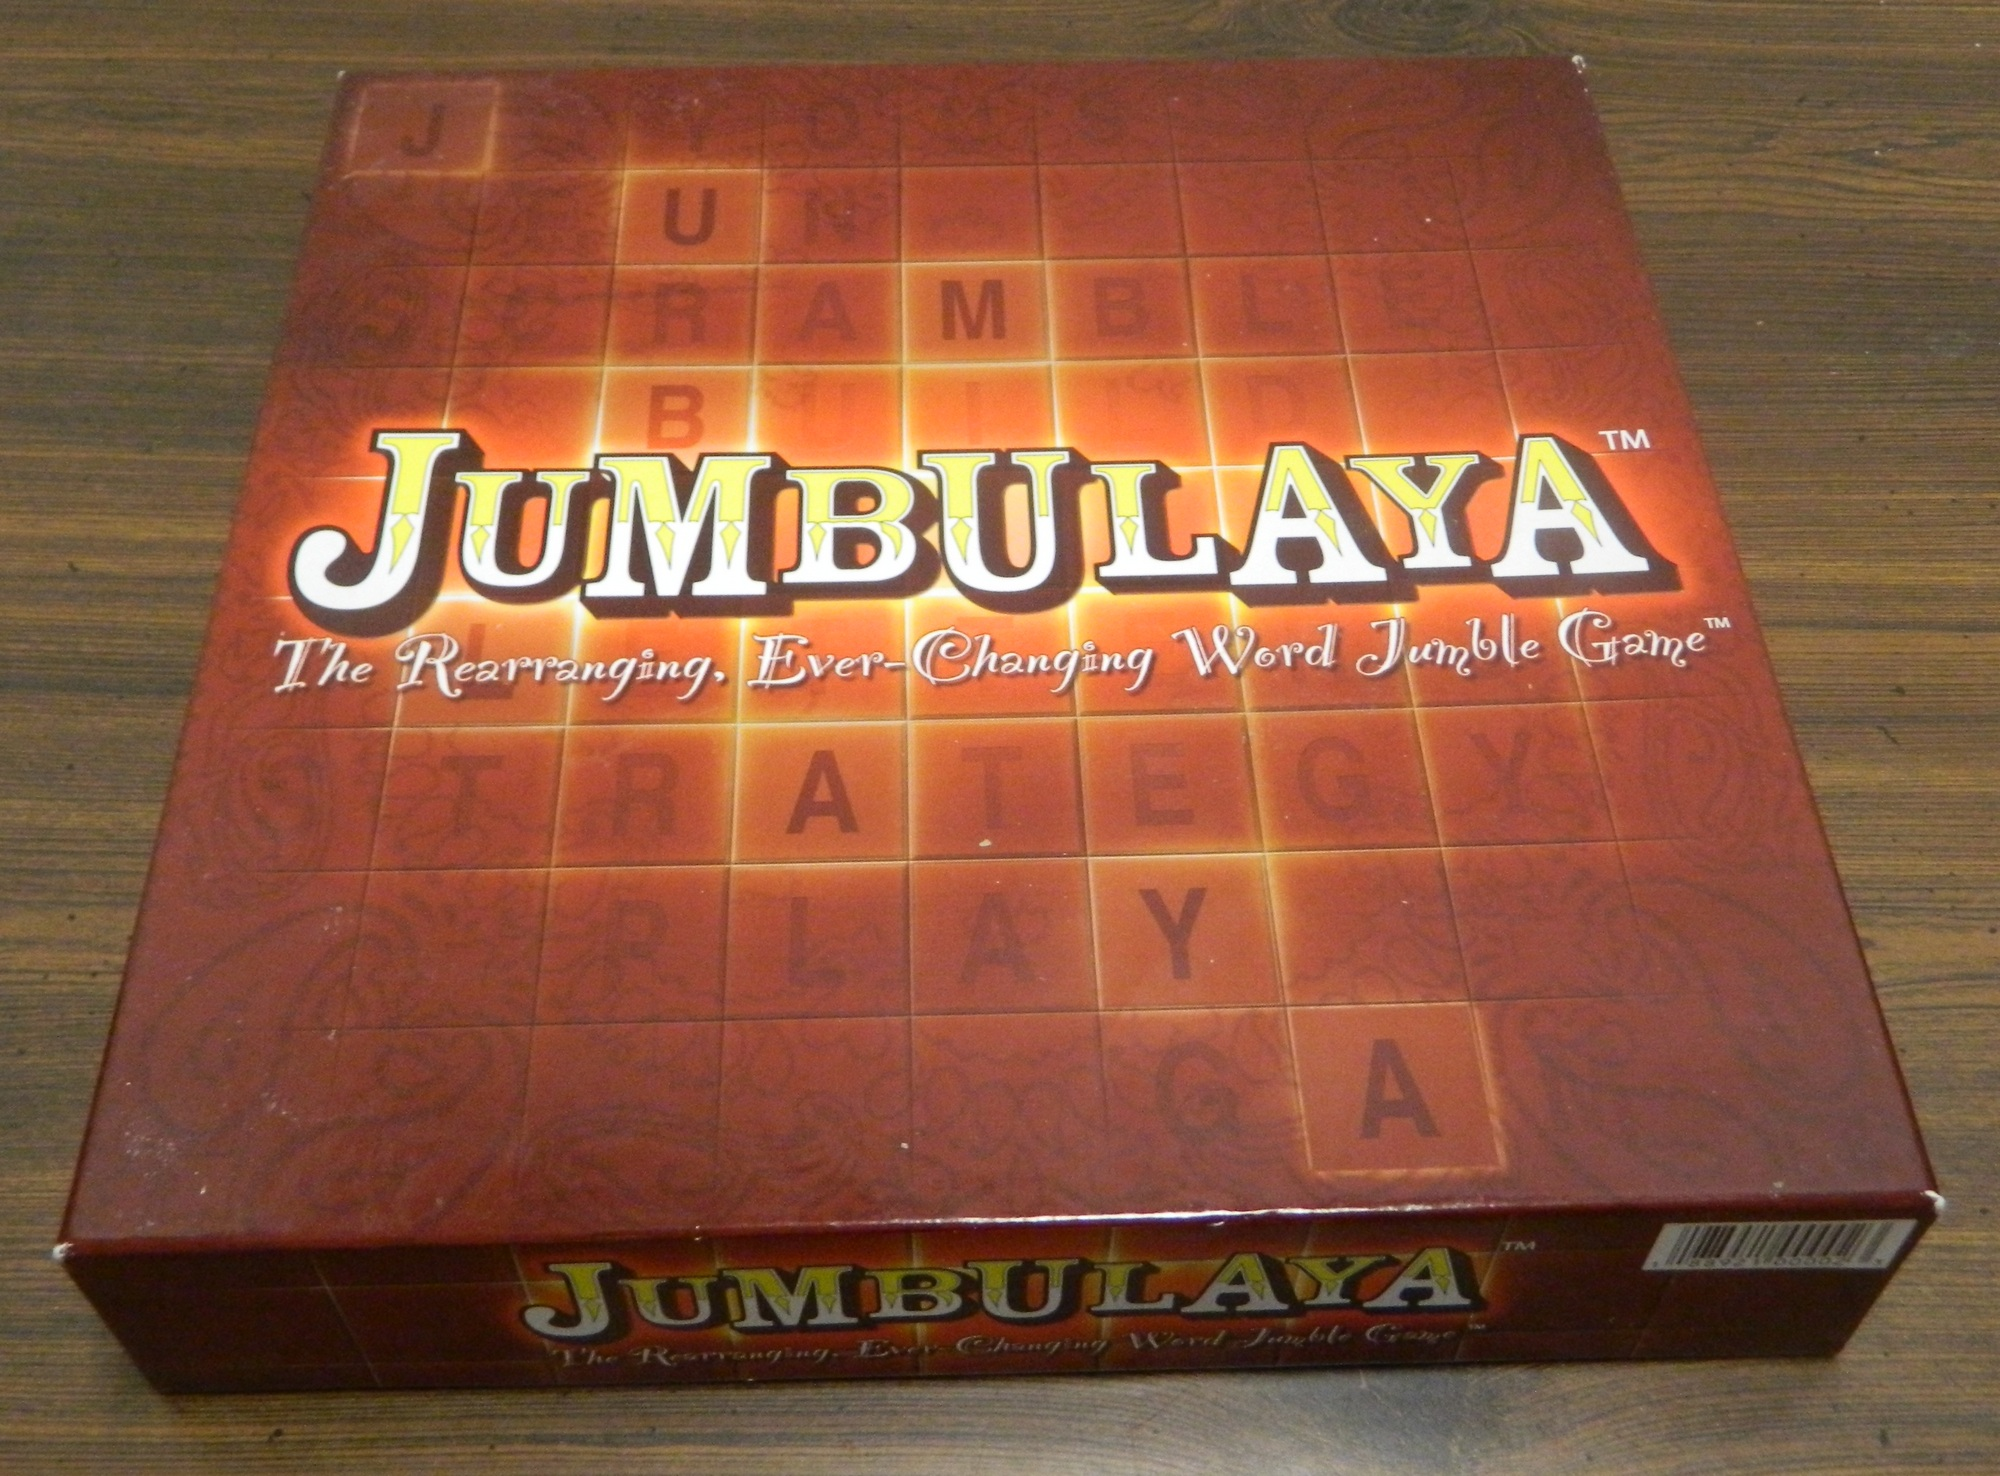 Box for Jumbulaya